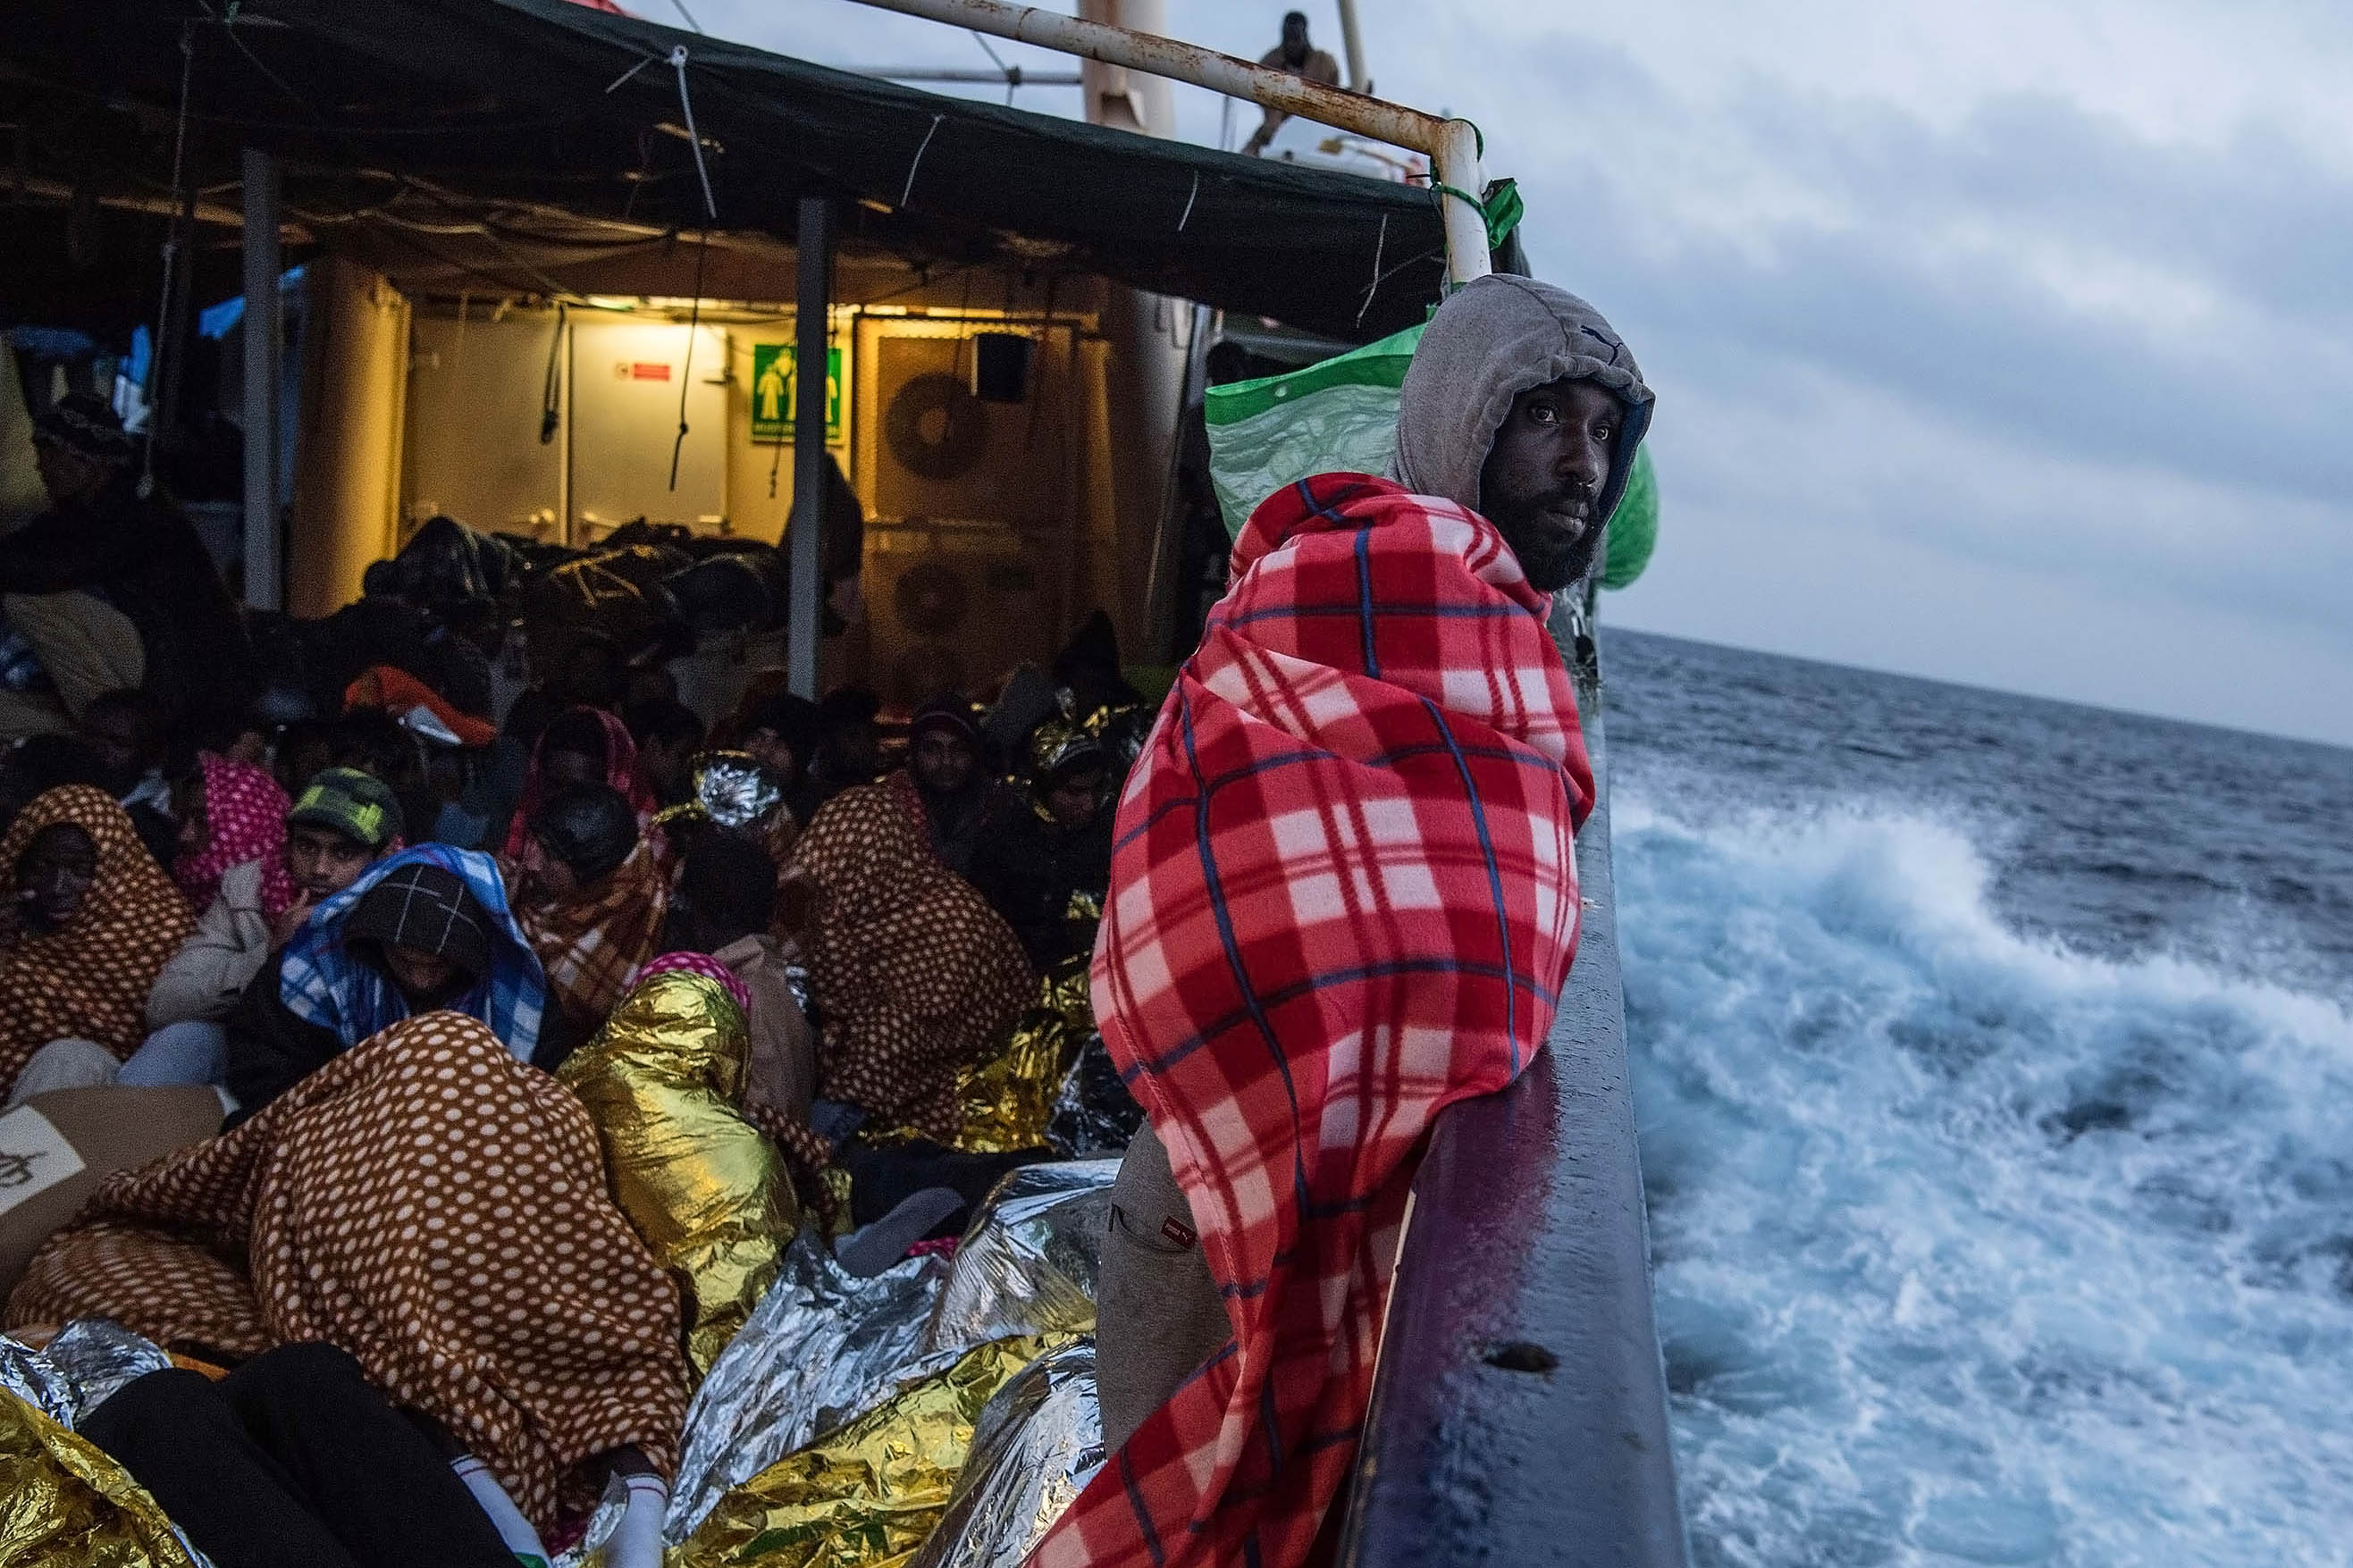 19 February 2017: Refugees and migrants on the deck of a Spanish rescue vessel, sailing towards the Italian port of Pozzallo after being rescued off the coast north of Sabratha, Libya. (Photograph by David Ramos/Getty Images)